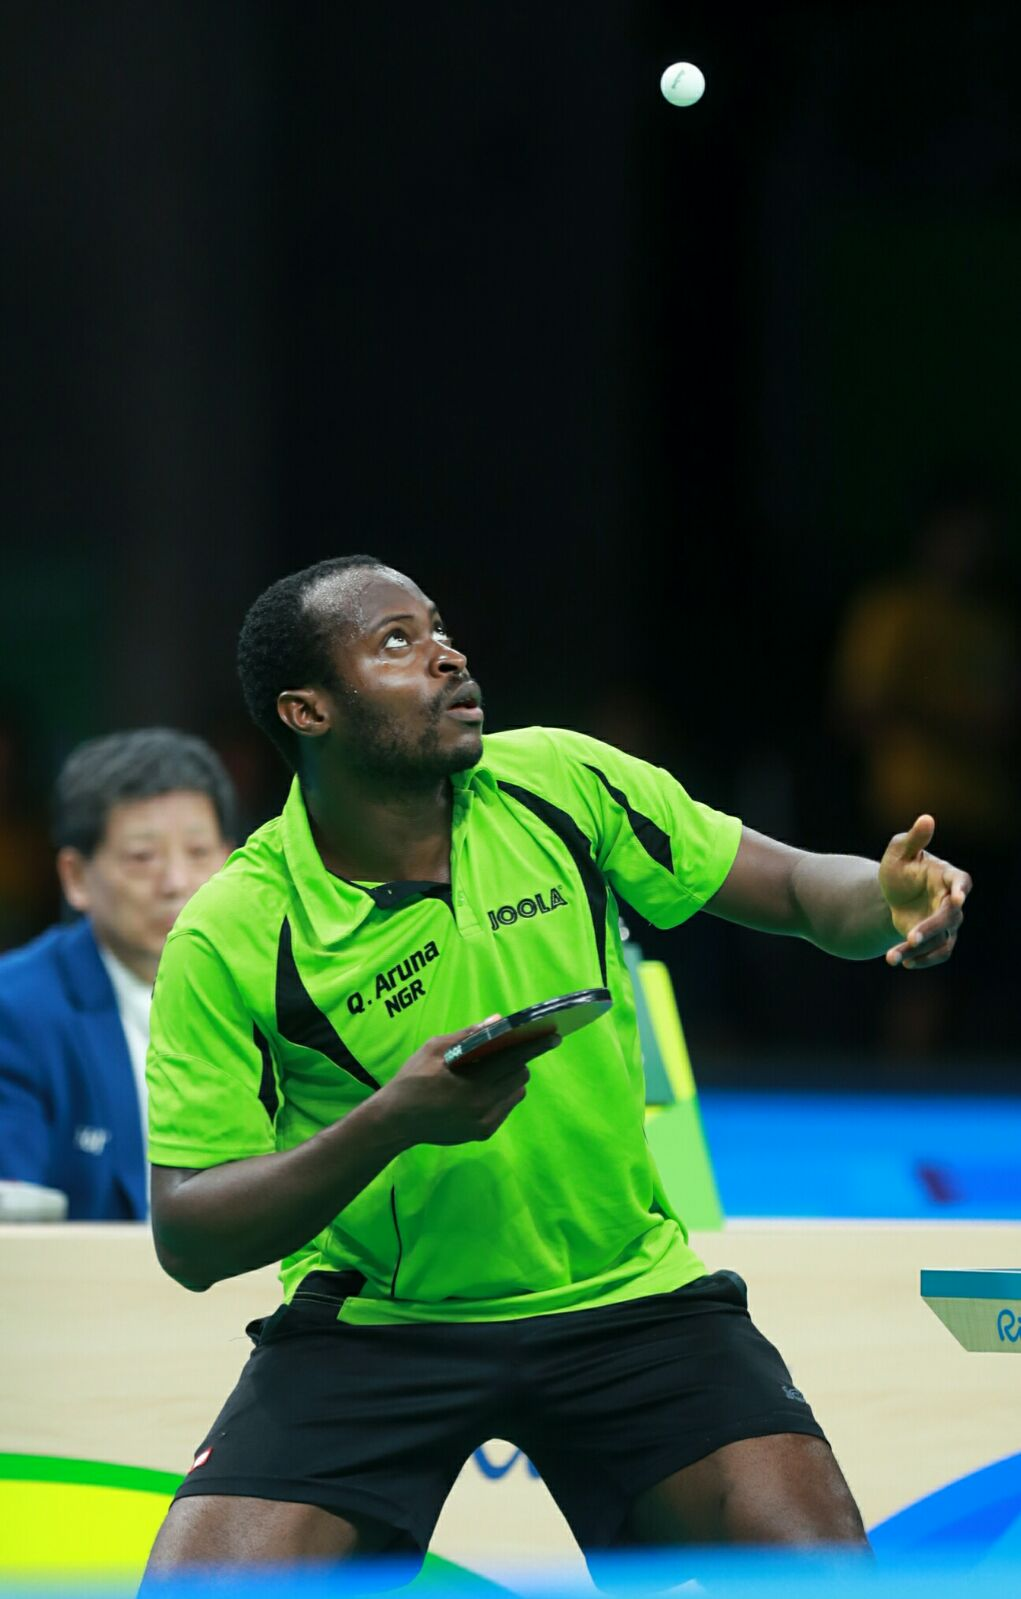 Rio Table Tennis: World No.1 Long Knocks Out Nigeria's Quadri